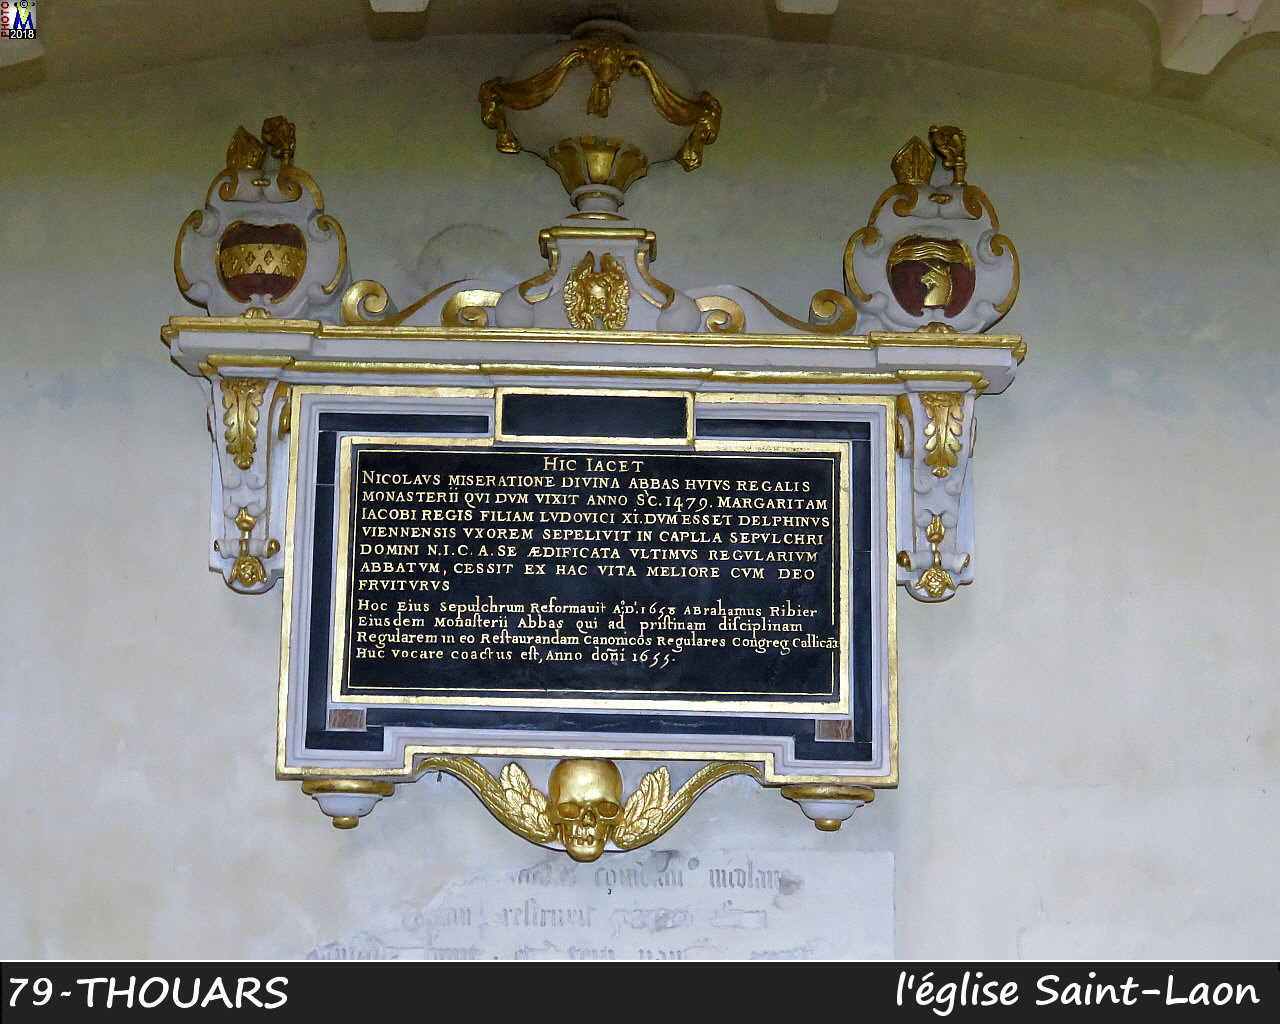 79THOUARS_egliseSL_1170.jpg